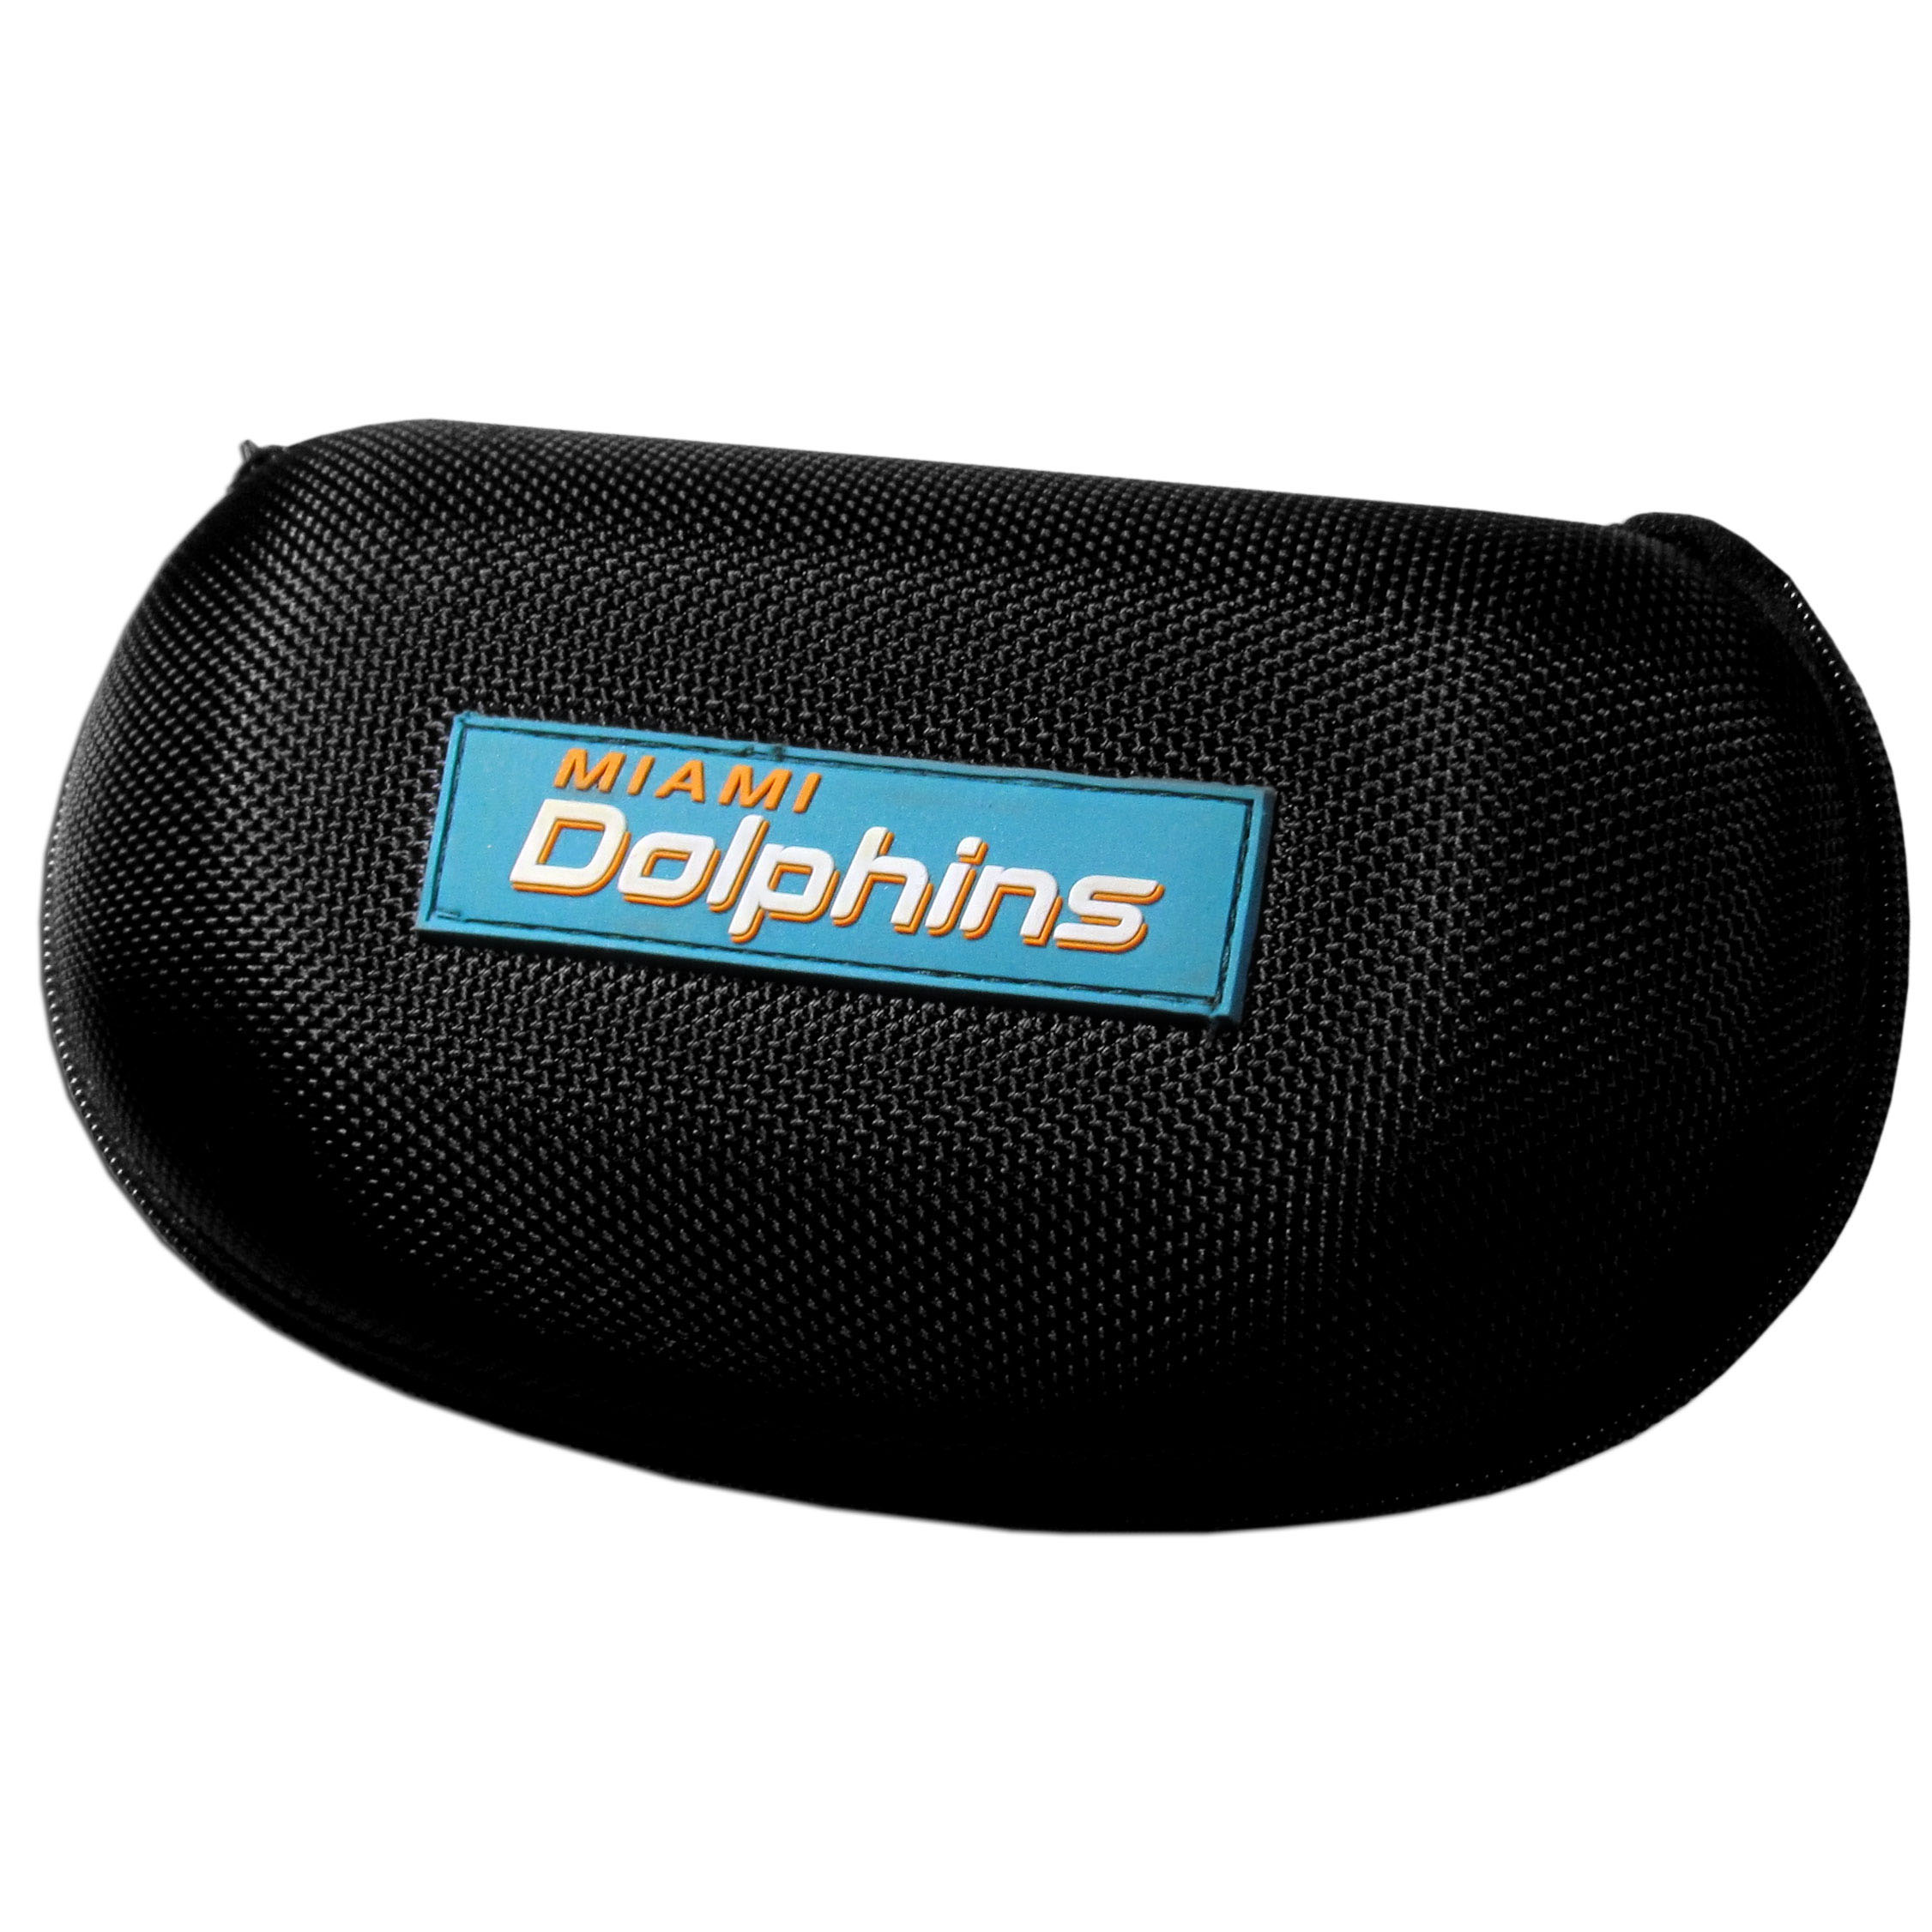 Miami Dolphins Hard Shell Sunglass Case - Our Miami Dolphins hard sunglass cases are a great way to protect your sunglasses. The hard molded shell protects the glasses from being crushed or damaged from dropping. The zippered closure prevents accidental opening and the soft lining protects the lenses from scratches.